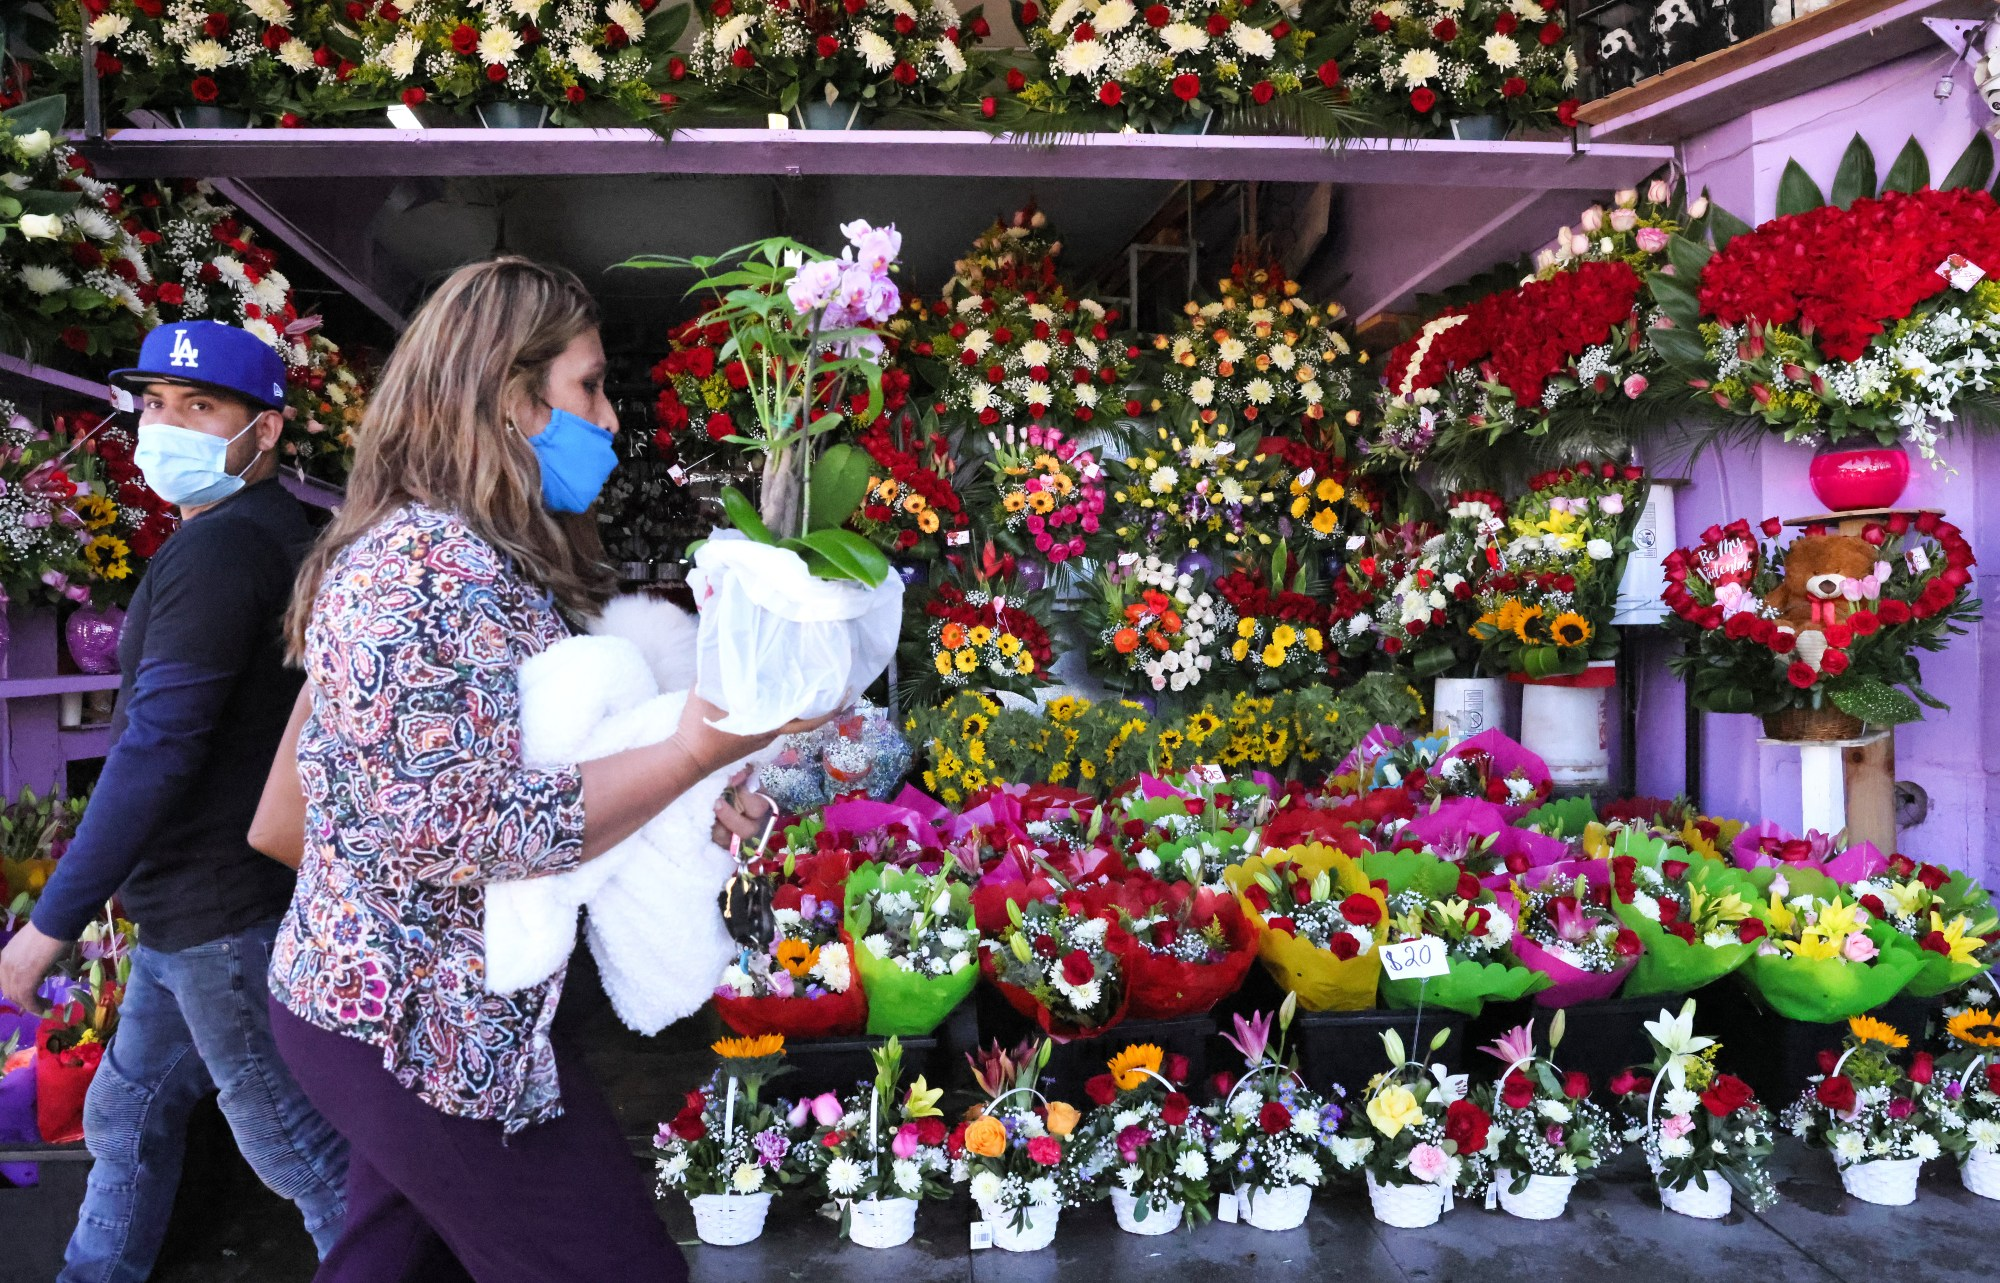 Flowers are displayed for sale in the flower district two days before Valentine's Day amid the COVID-19 pandemic on Feb. 12, 2021 in Los Angeles. (Mario Tama/Getty Images)